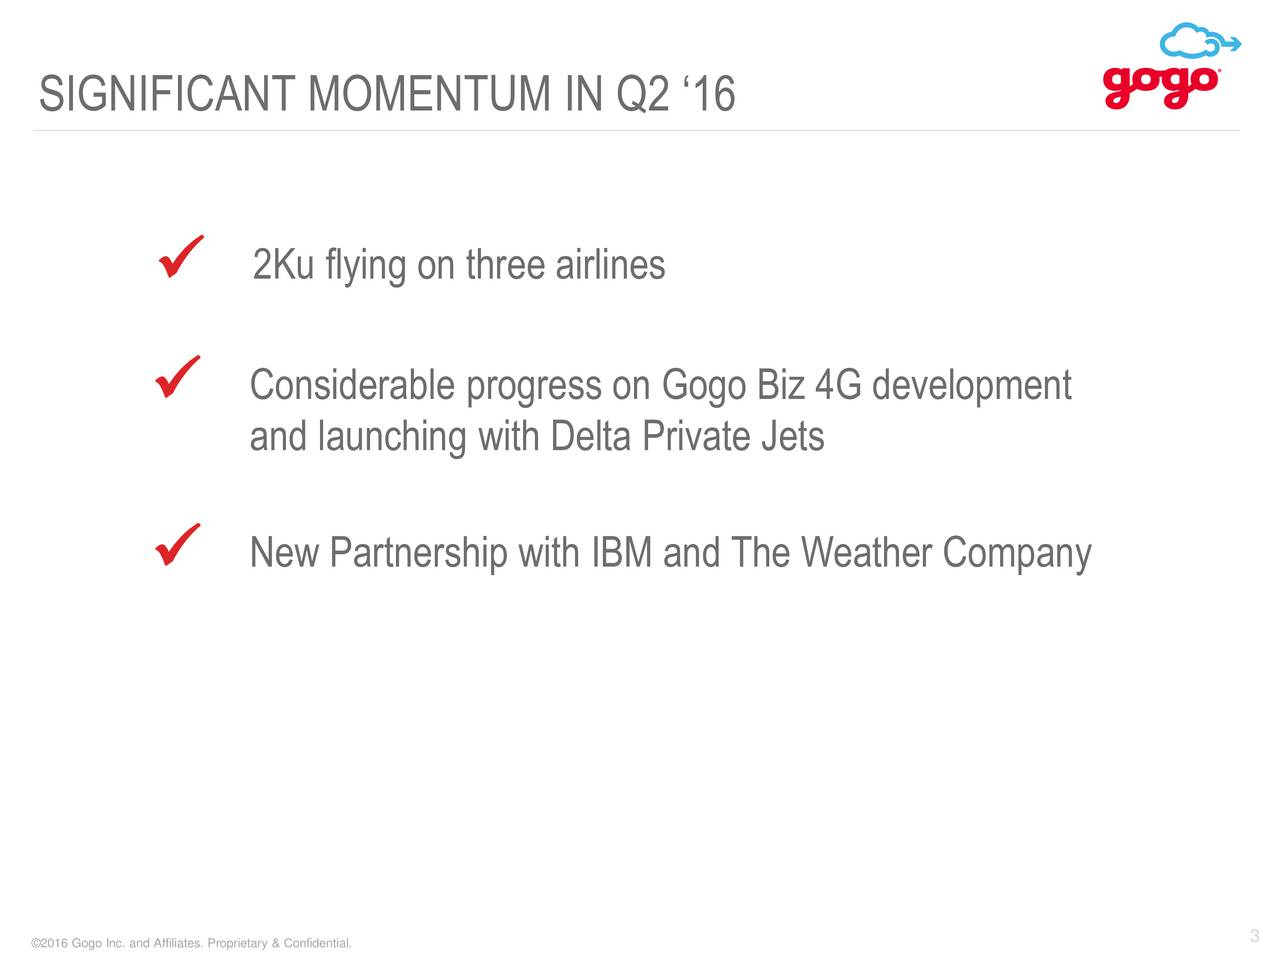 2Ku flying on three airlines Considerable progress on Gogo Biz 4G development and launching with Delta Private Jets New Partnership with IBM and The Weather Company